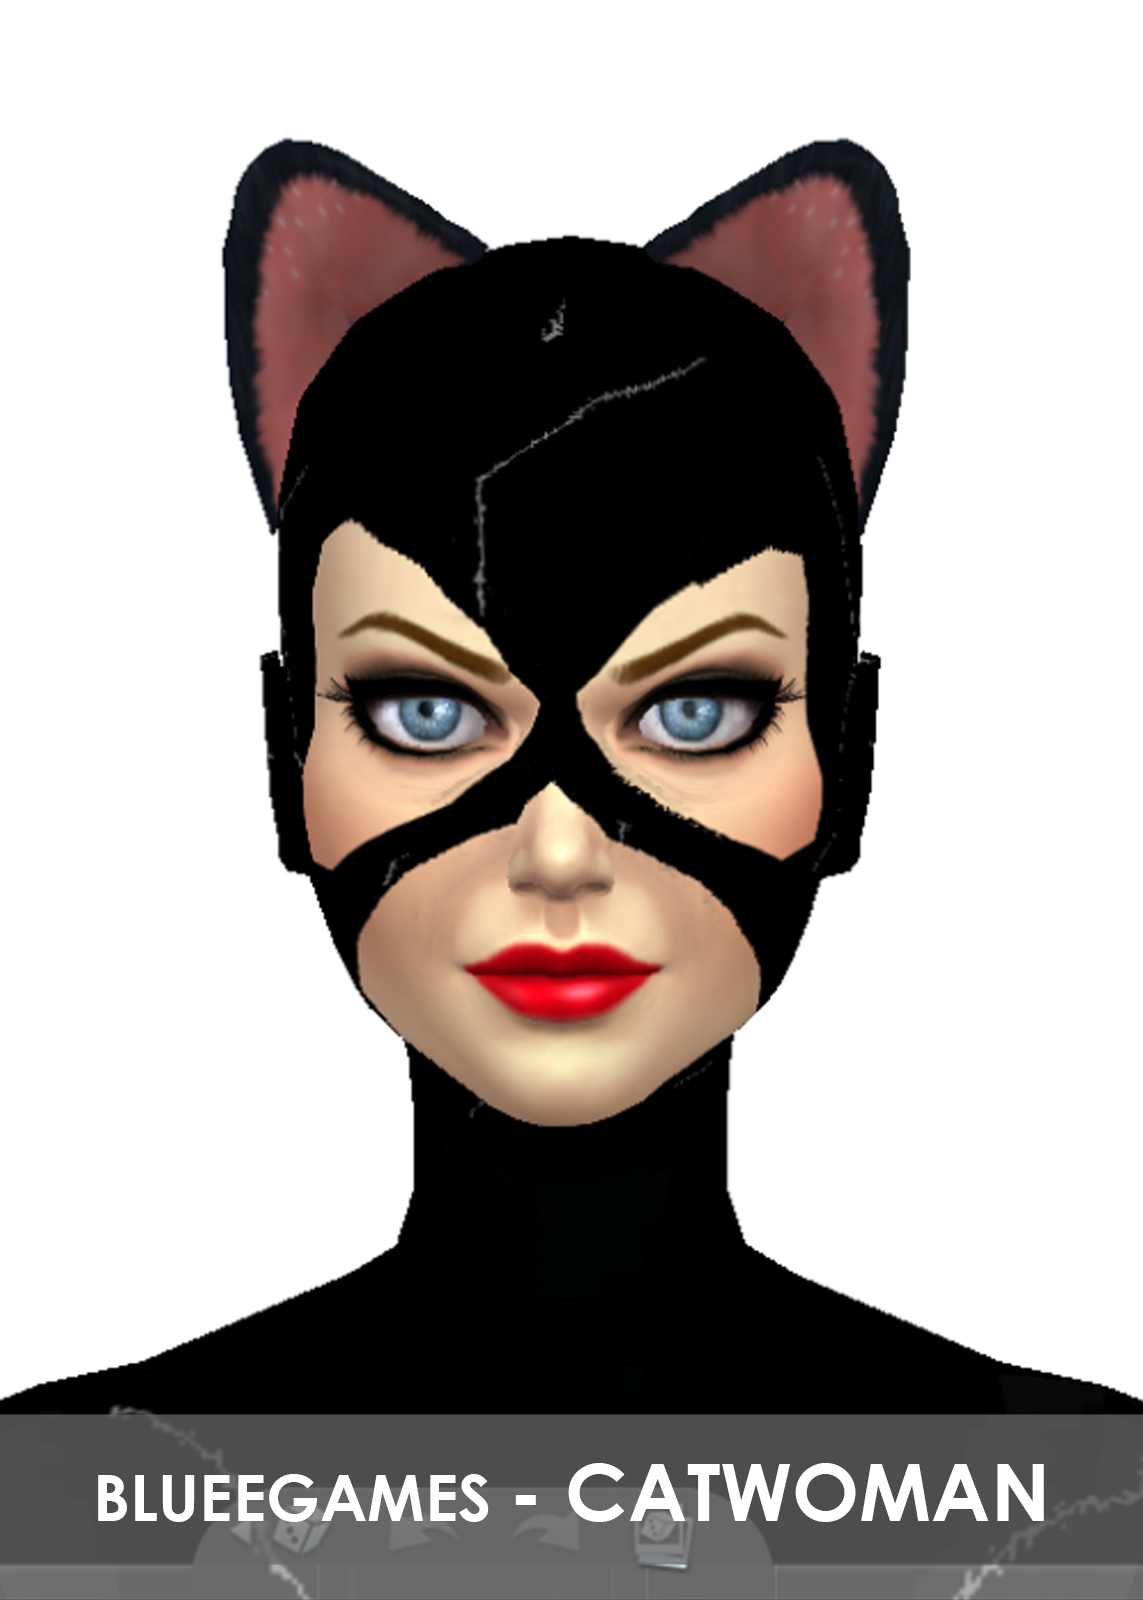 House Building Games Like The Sims Arkham Catwoman Selina Kyle Sim Blueegames